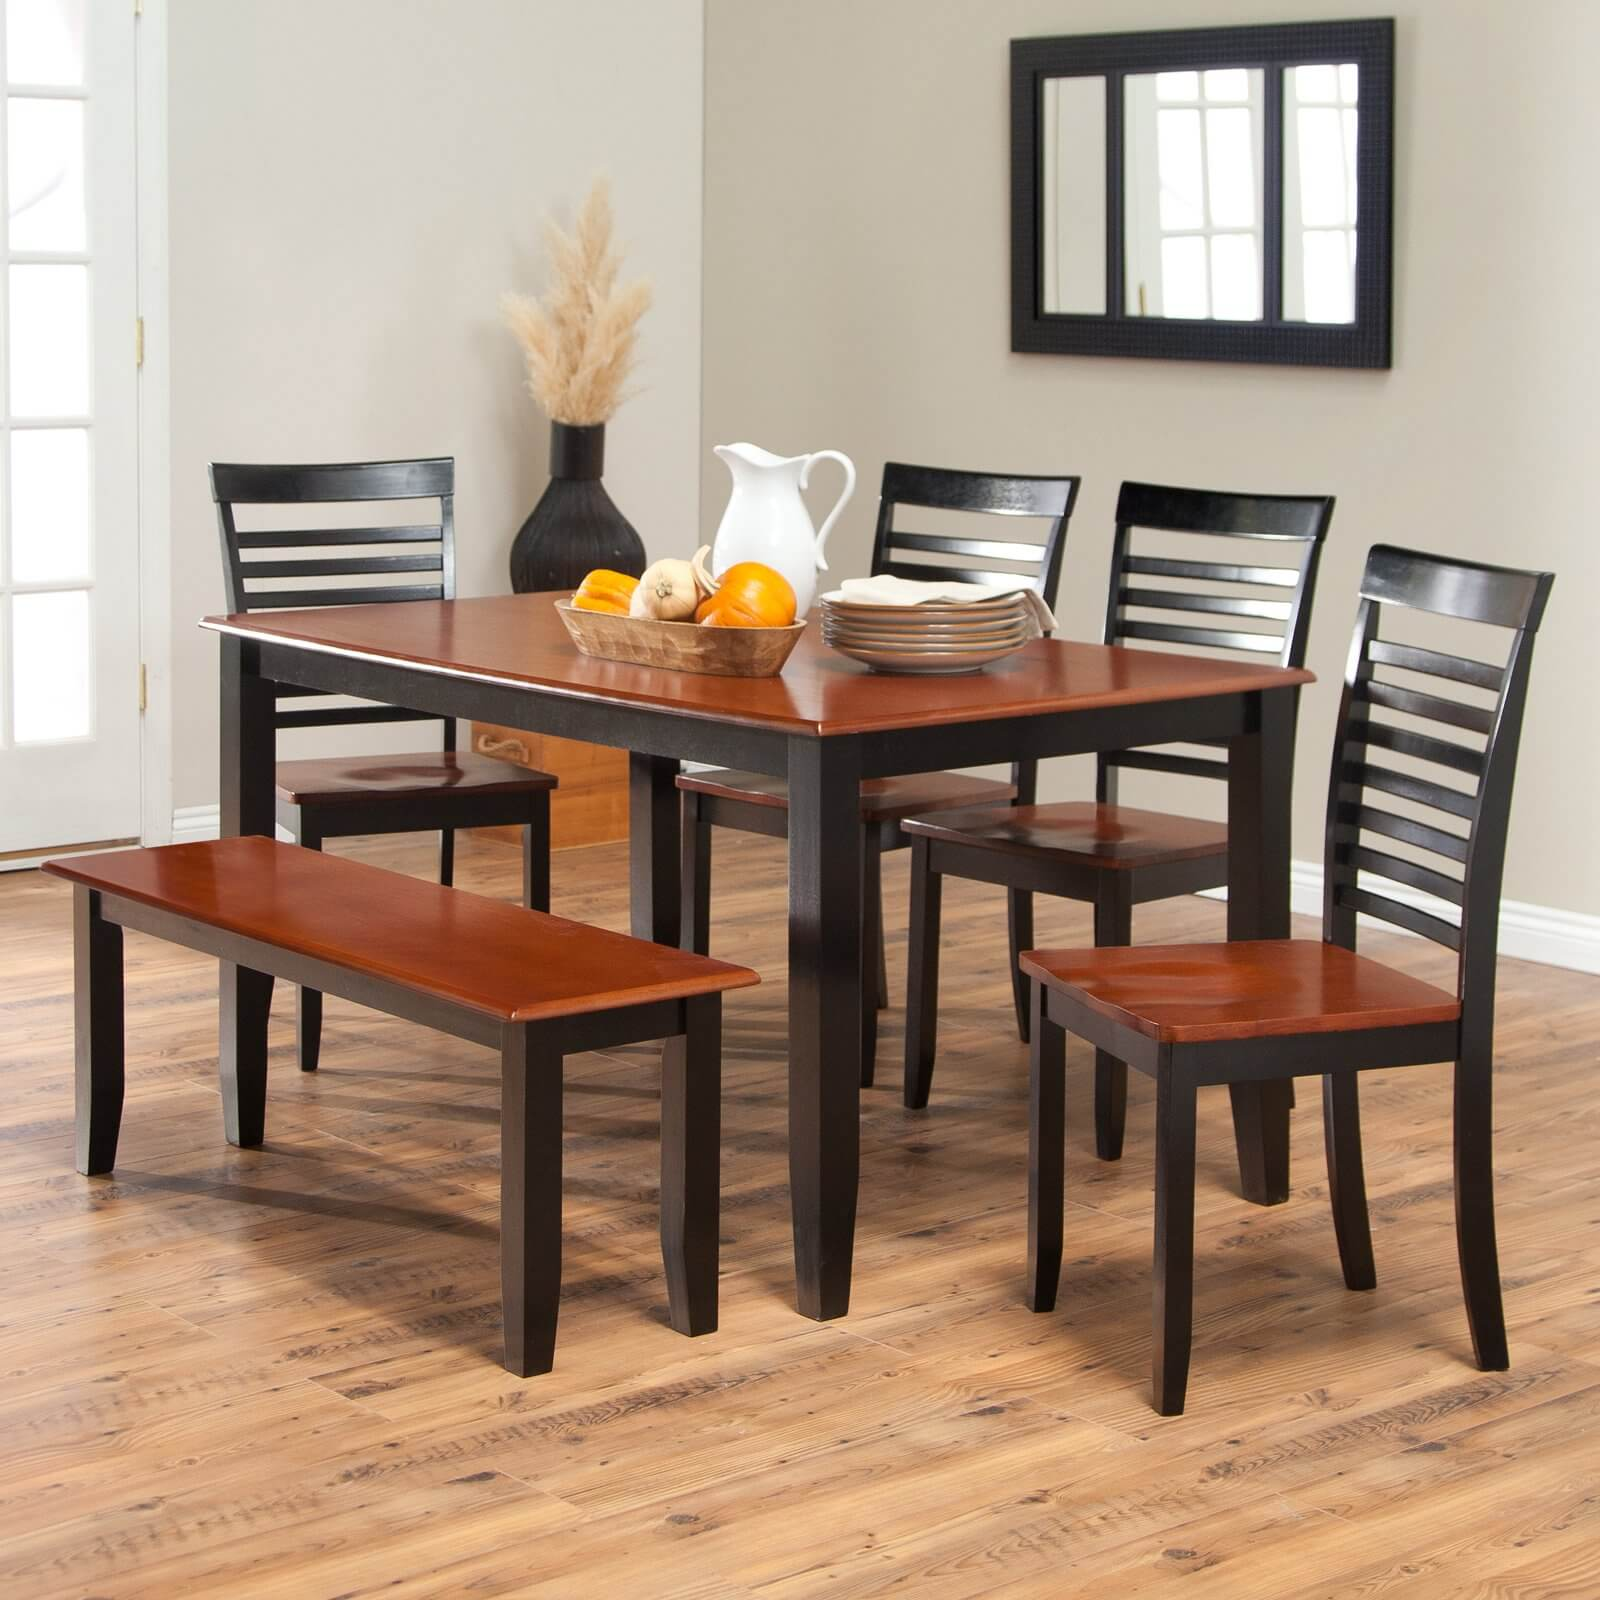 Dining Room Table With Chairs And Bench: 26 Big & Small Dining Room Sets With Bench Seating